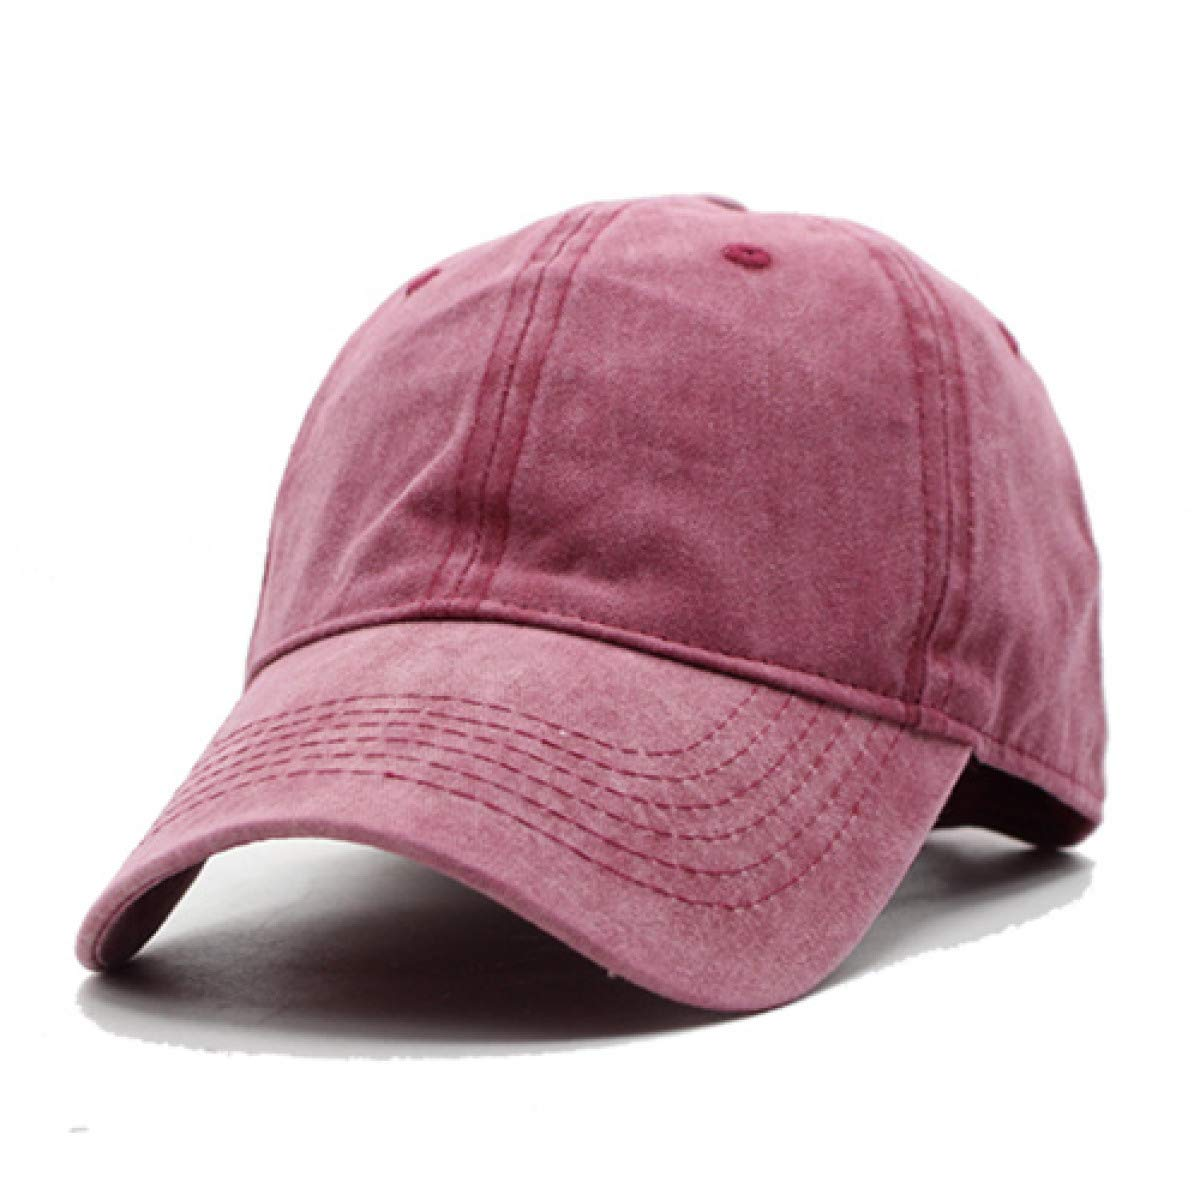 Amazon.com: WEEKEND SHOP Snapback Caps Men Baseball Cap Hats for Men Casquette Plain Bone Gorras Cotton Washed Blank Vintage Baseball Caps Sun Hat Pink: ...